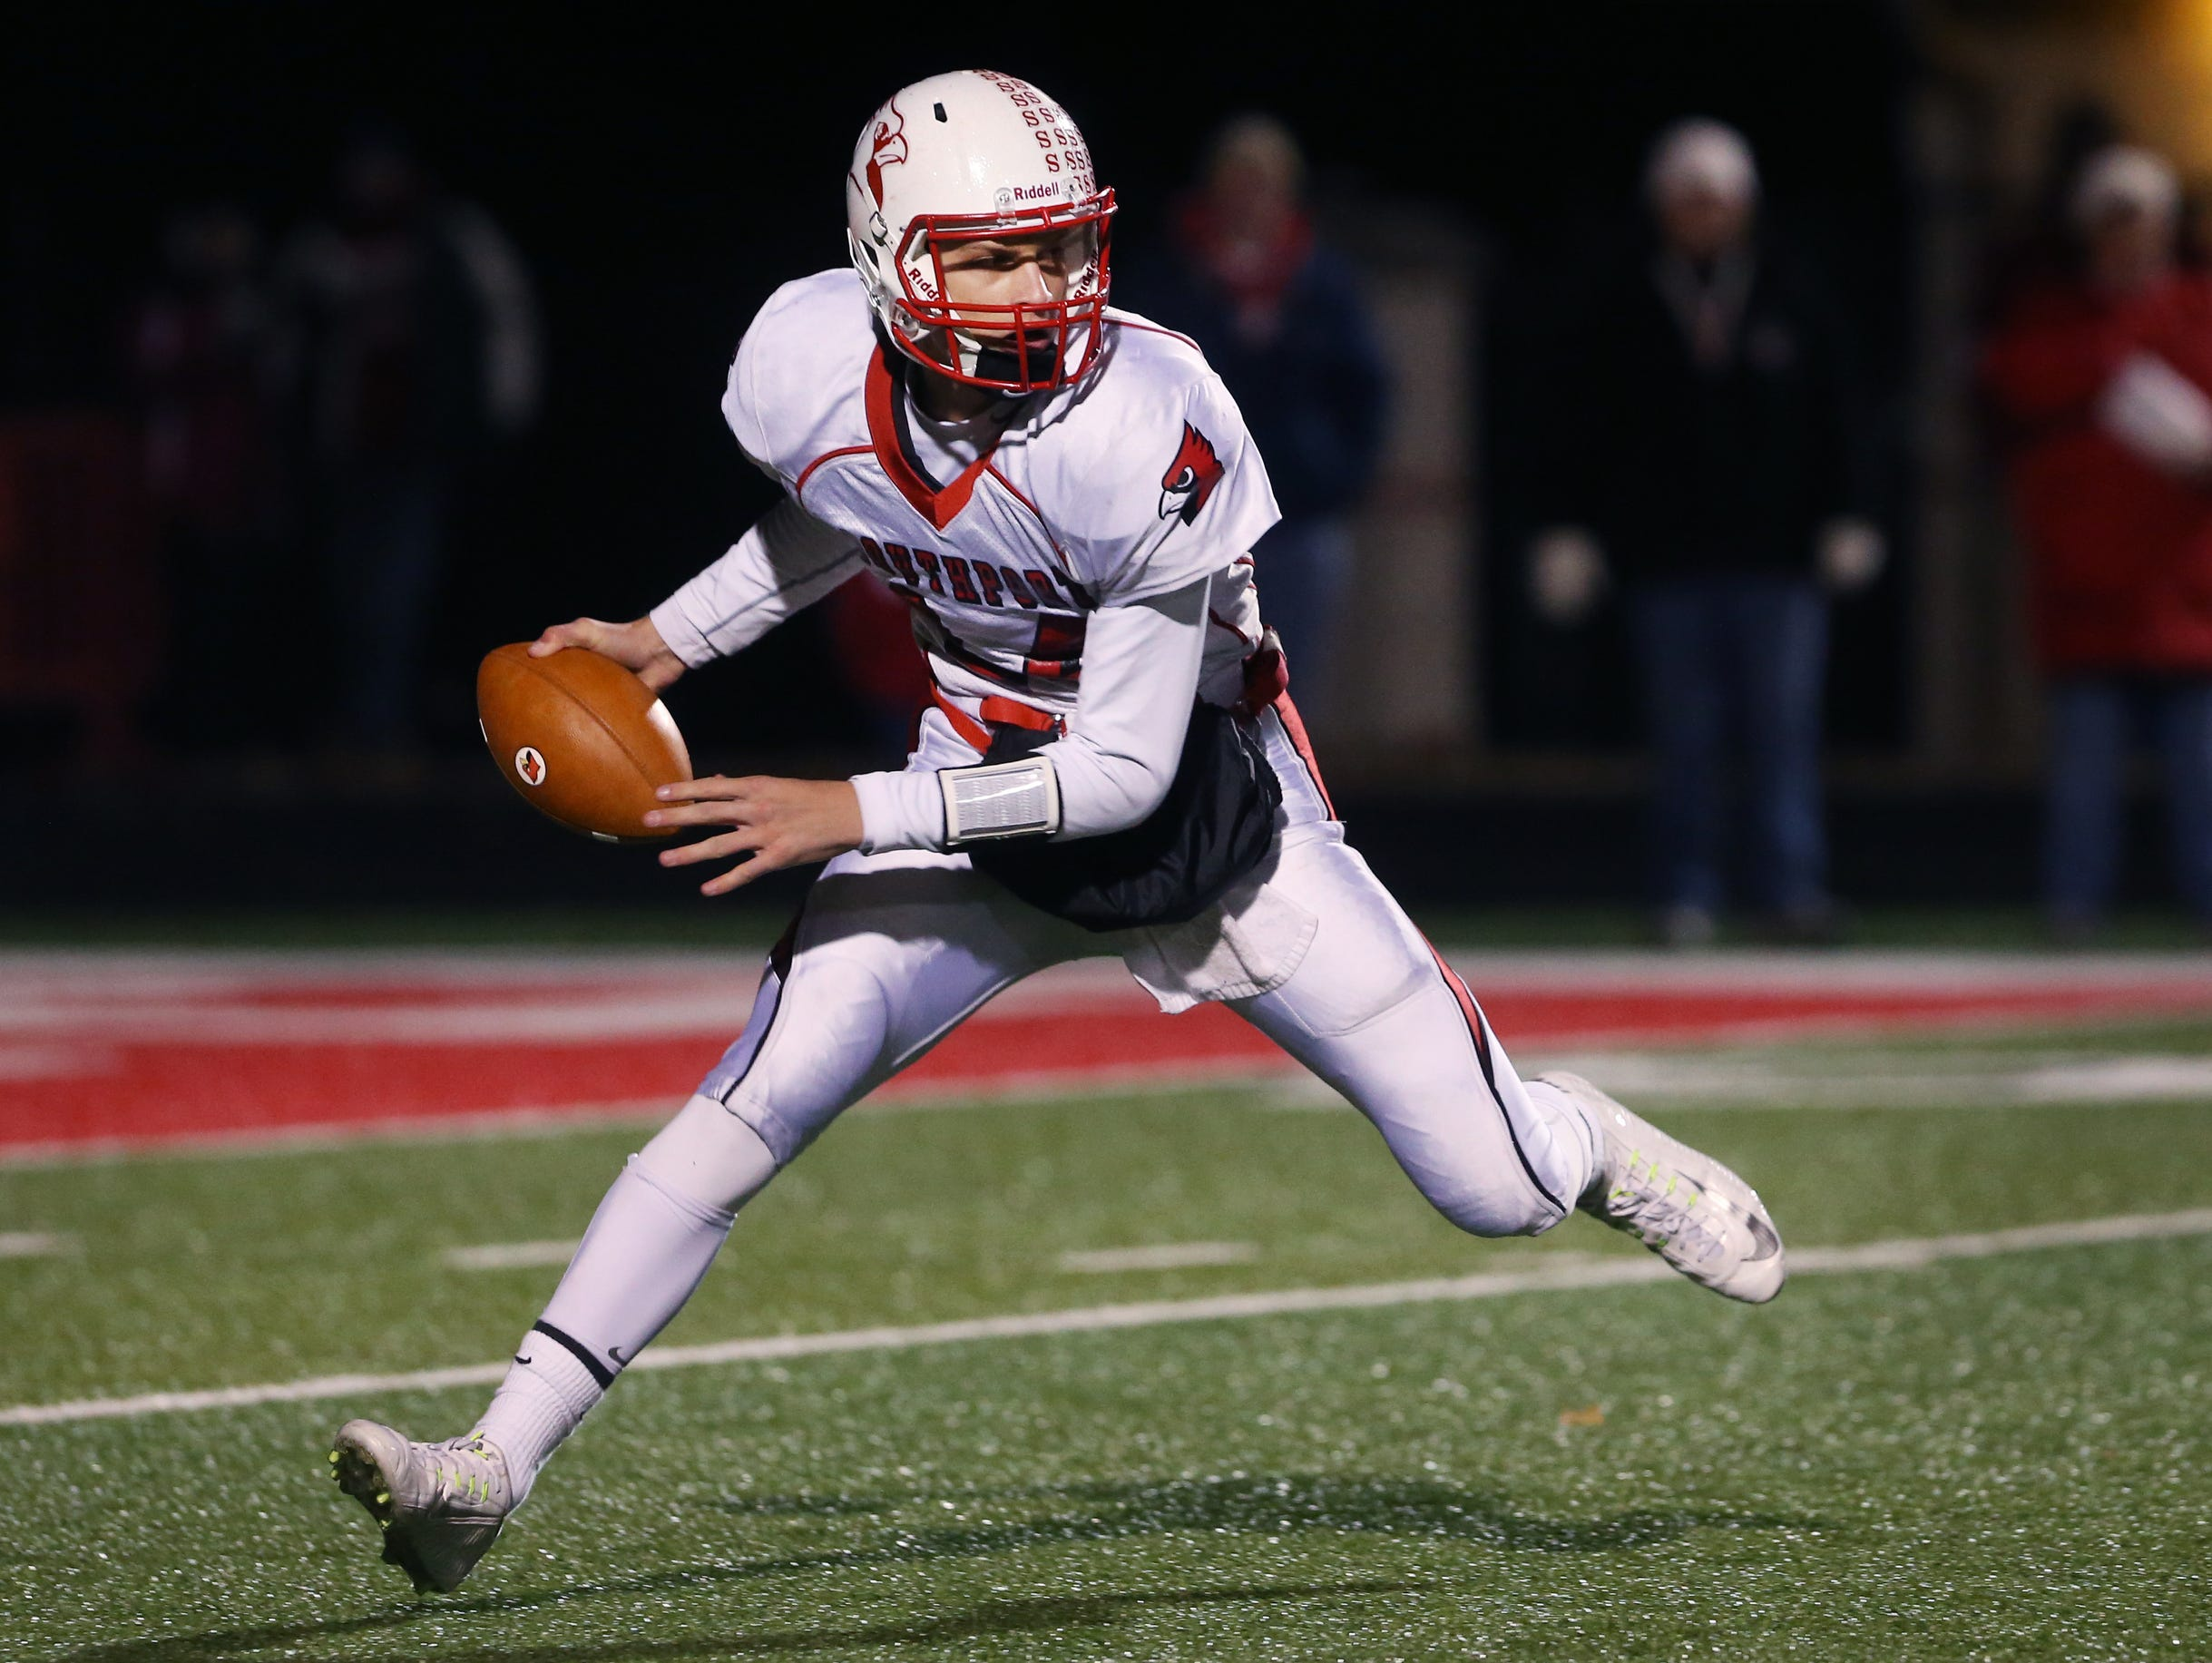 Southport quarterback Luke Johnston scrambles during the Cardinals' 35-22 loss at Center Grove in the 6-A Regional on Friday, Nov. 7, 2014.